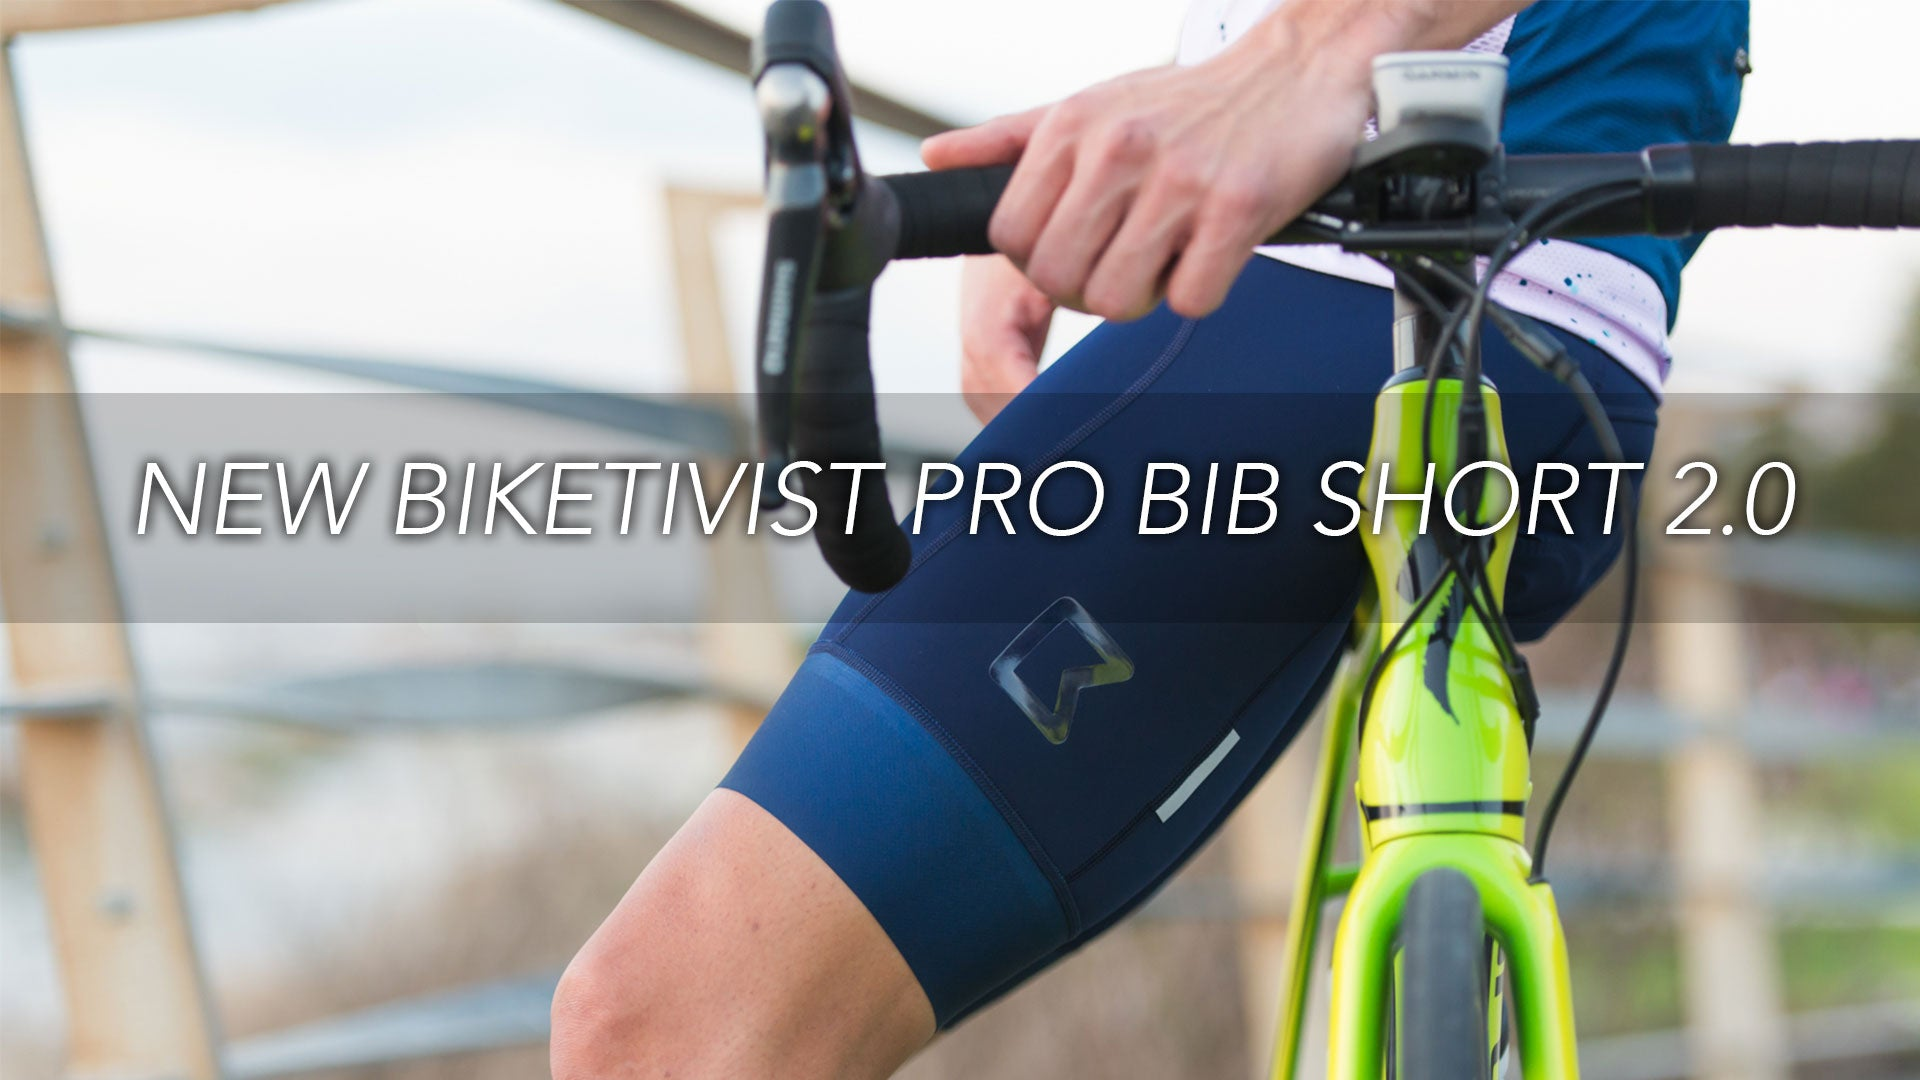 biketivist-the-pro-bib-short2